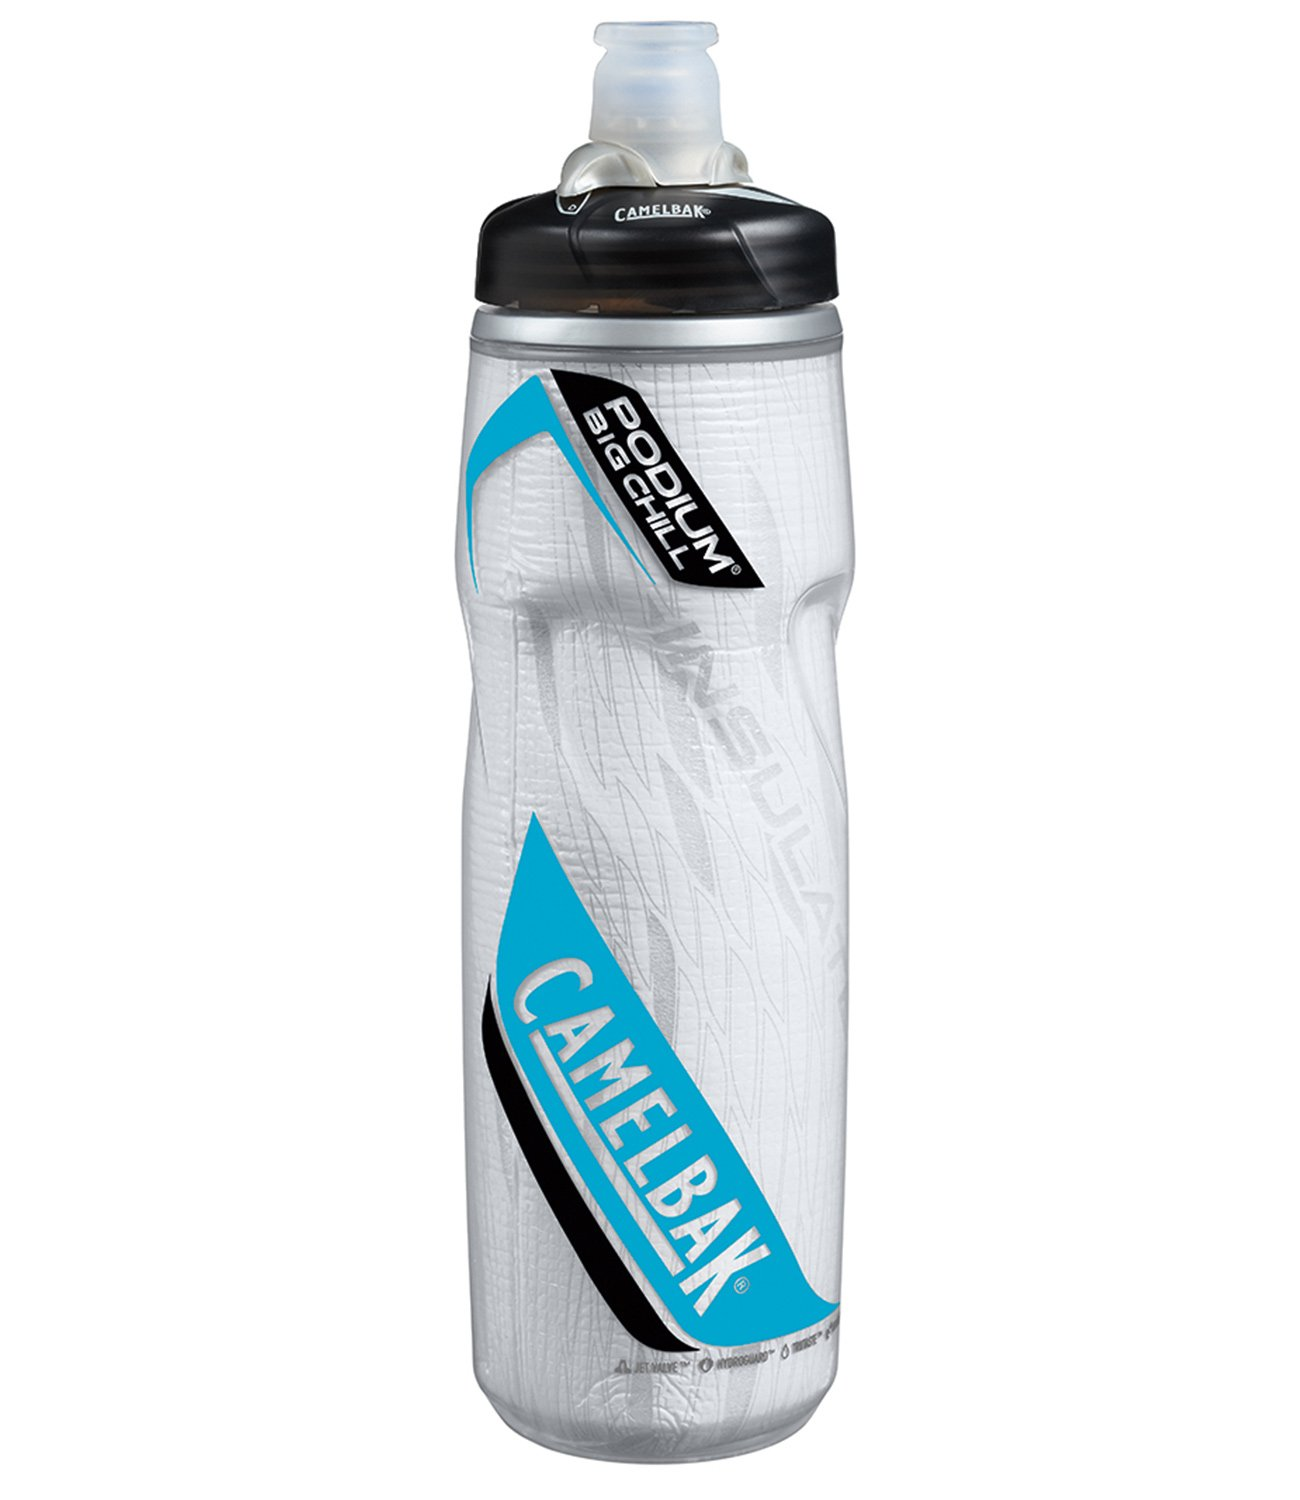 5 Best Cycling Water Bottles And How To Clean Them I